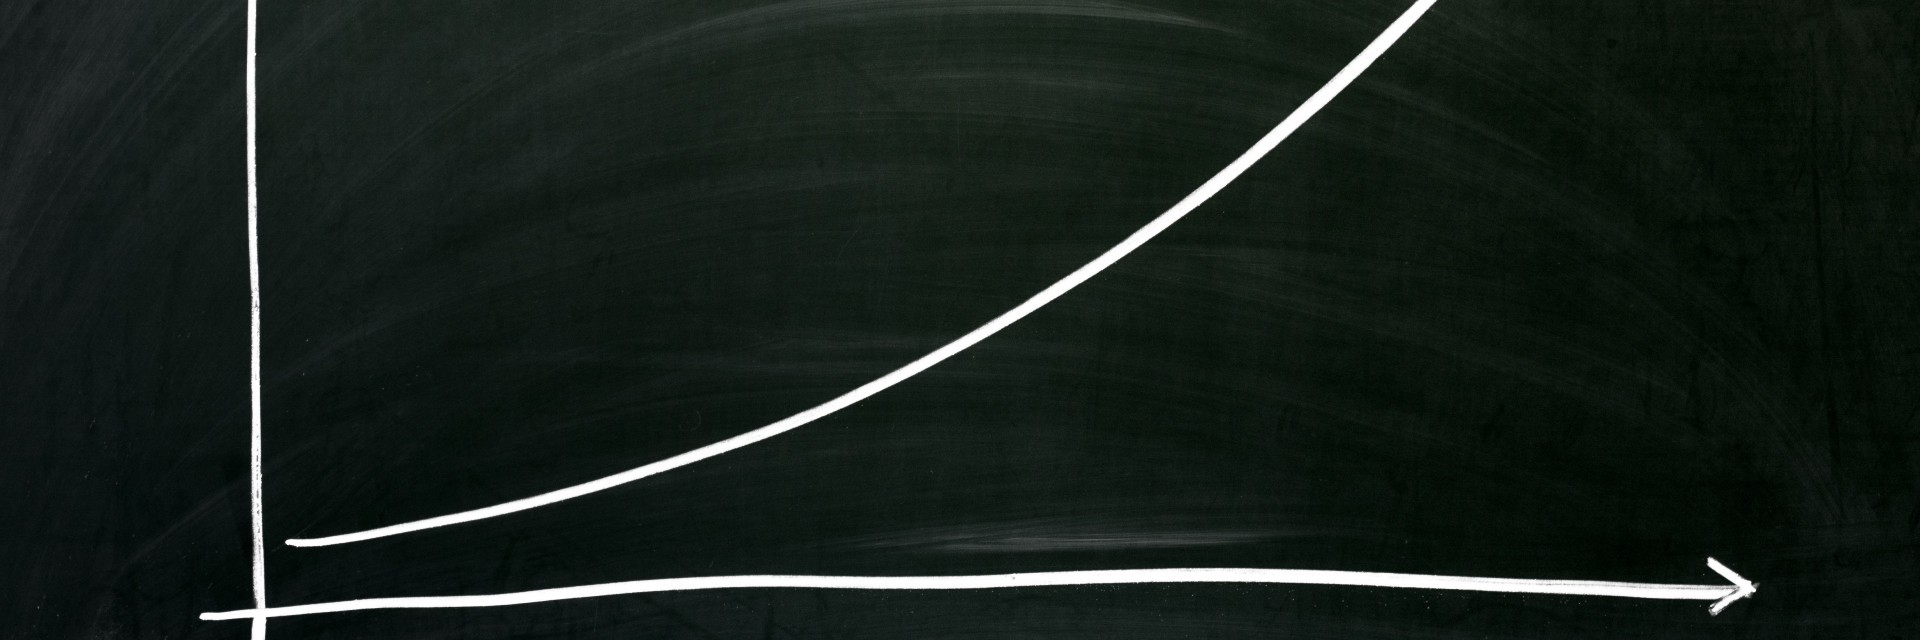 An exponential growth chart